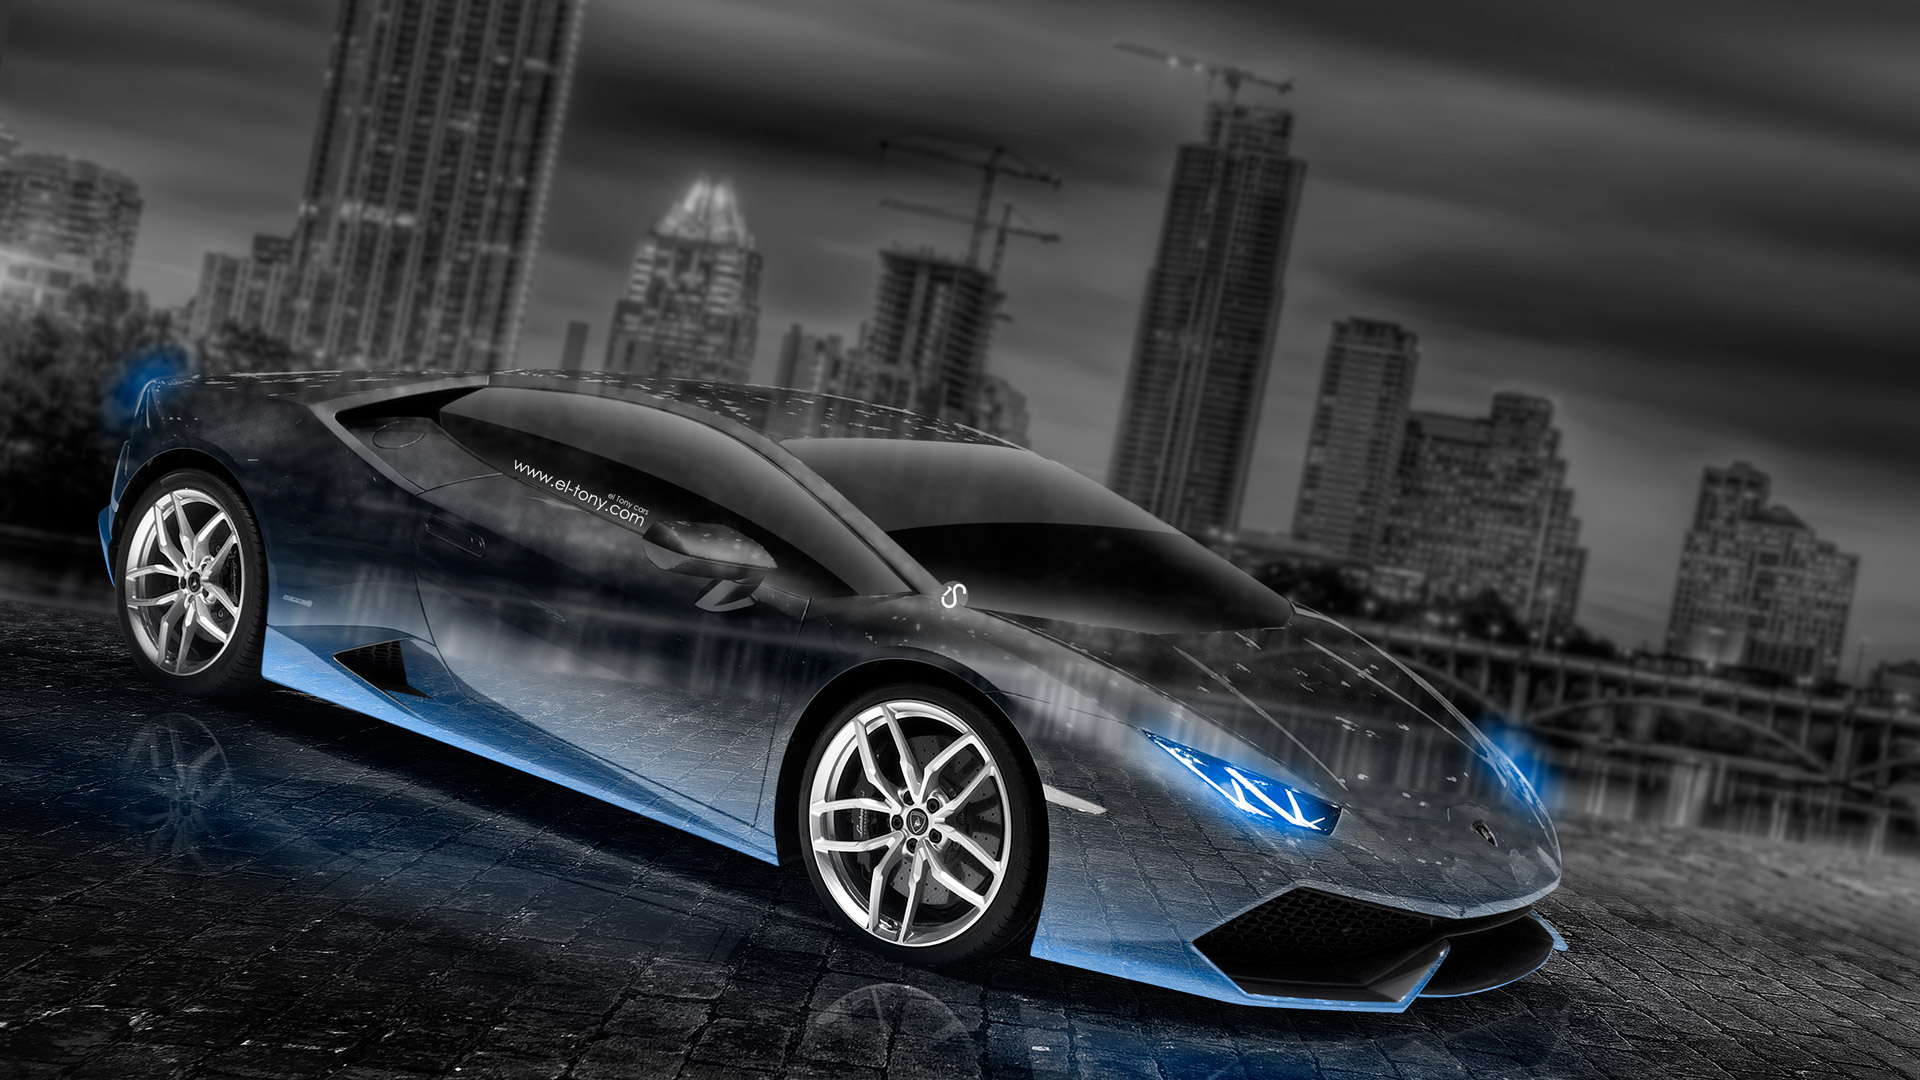 ... Lamborghini Huracan Crystal City Car 2014 Blue Neon  ...